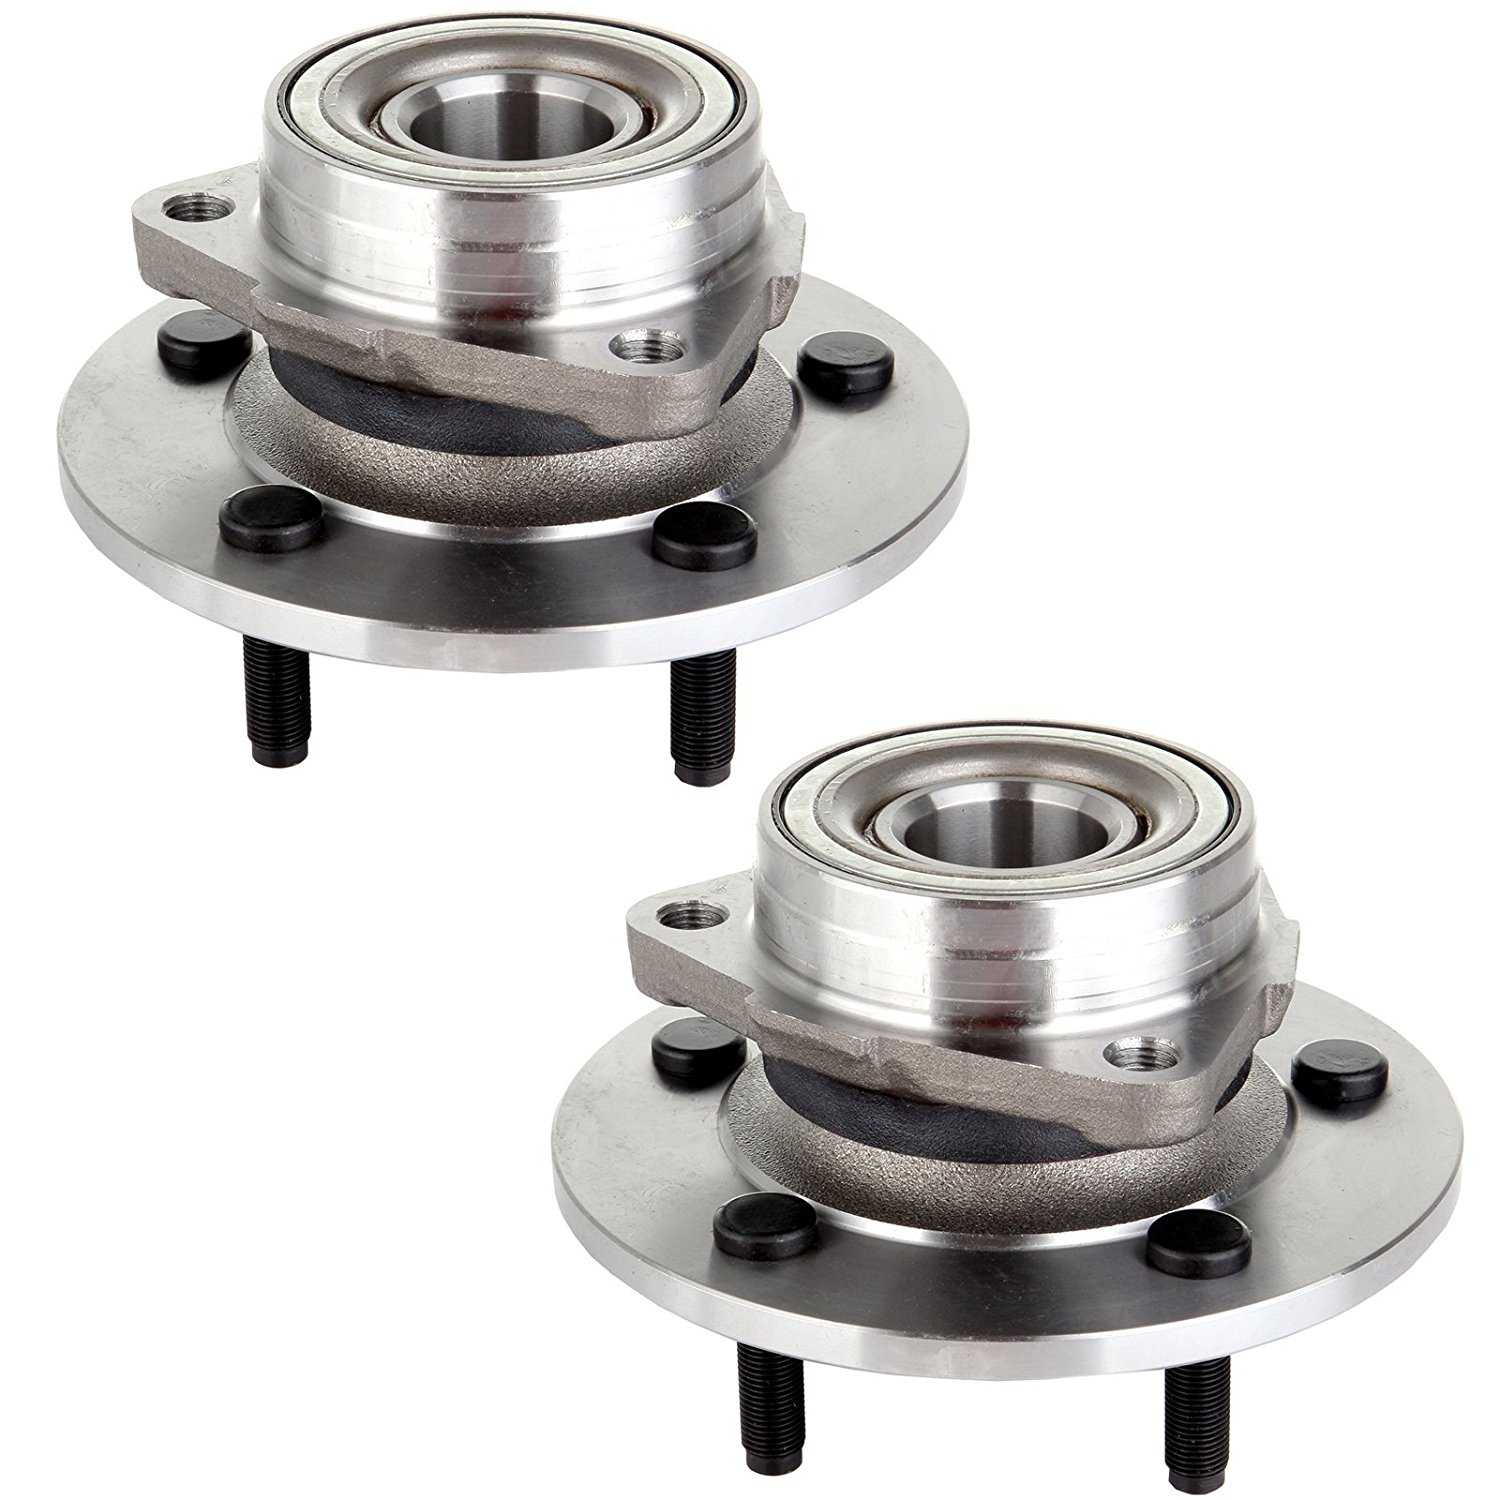 ECCPP Pair Of 2 New Front Wheel Hub Bearing for 00-01 Dodge Ram 1500 4WD 515038 X 2